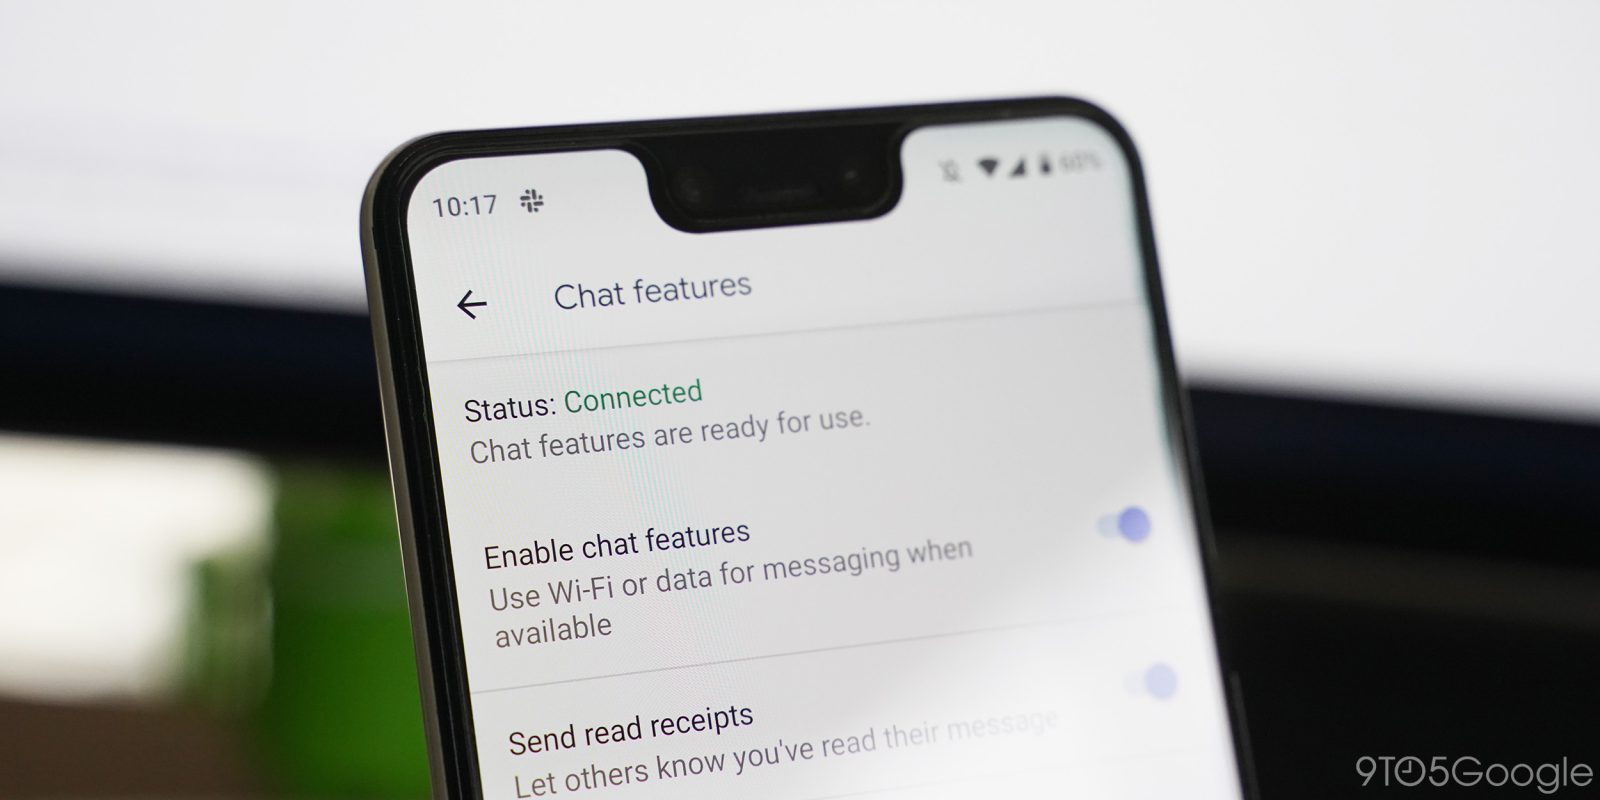 Google Messages adds RCS status indicator - 9to5Google